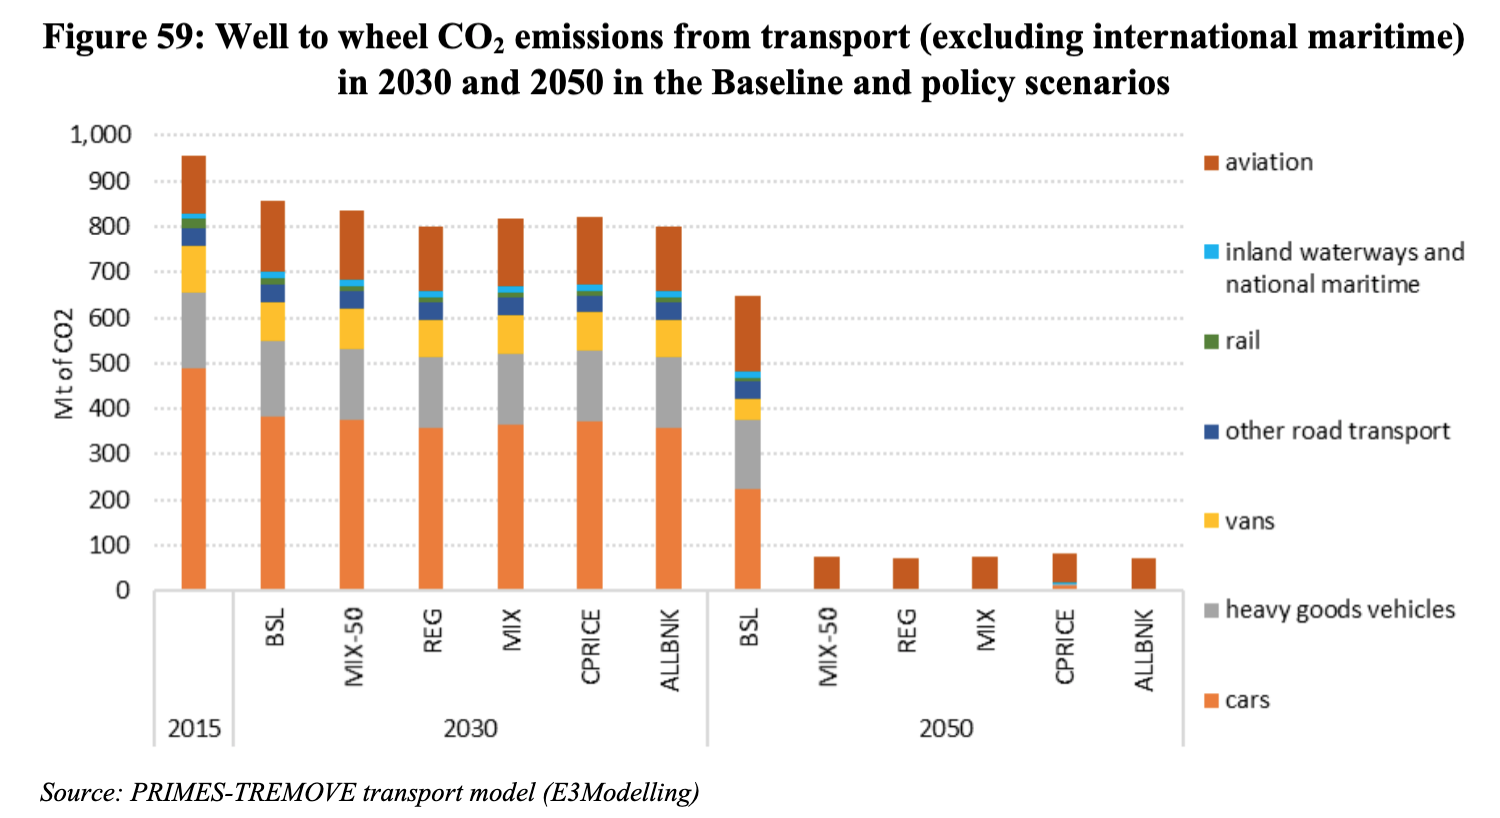 C02 emisssions from transport, now, 2030 and 2050